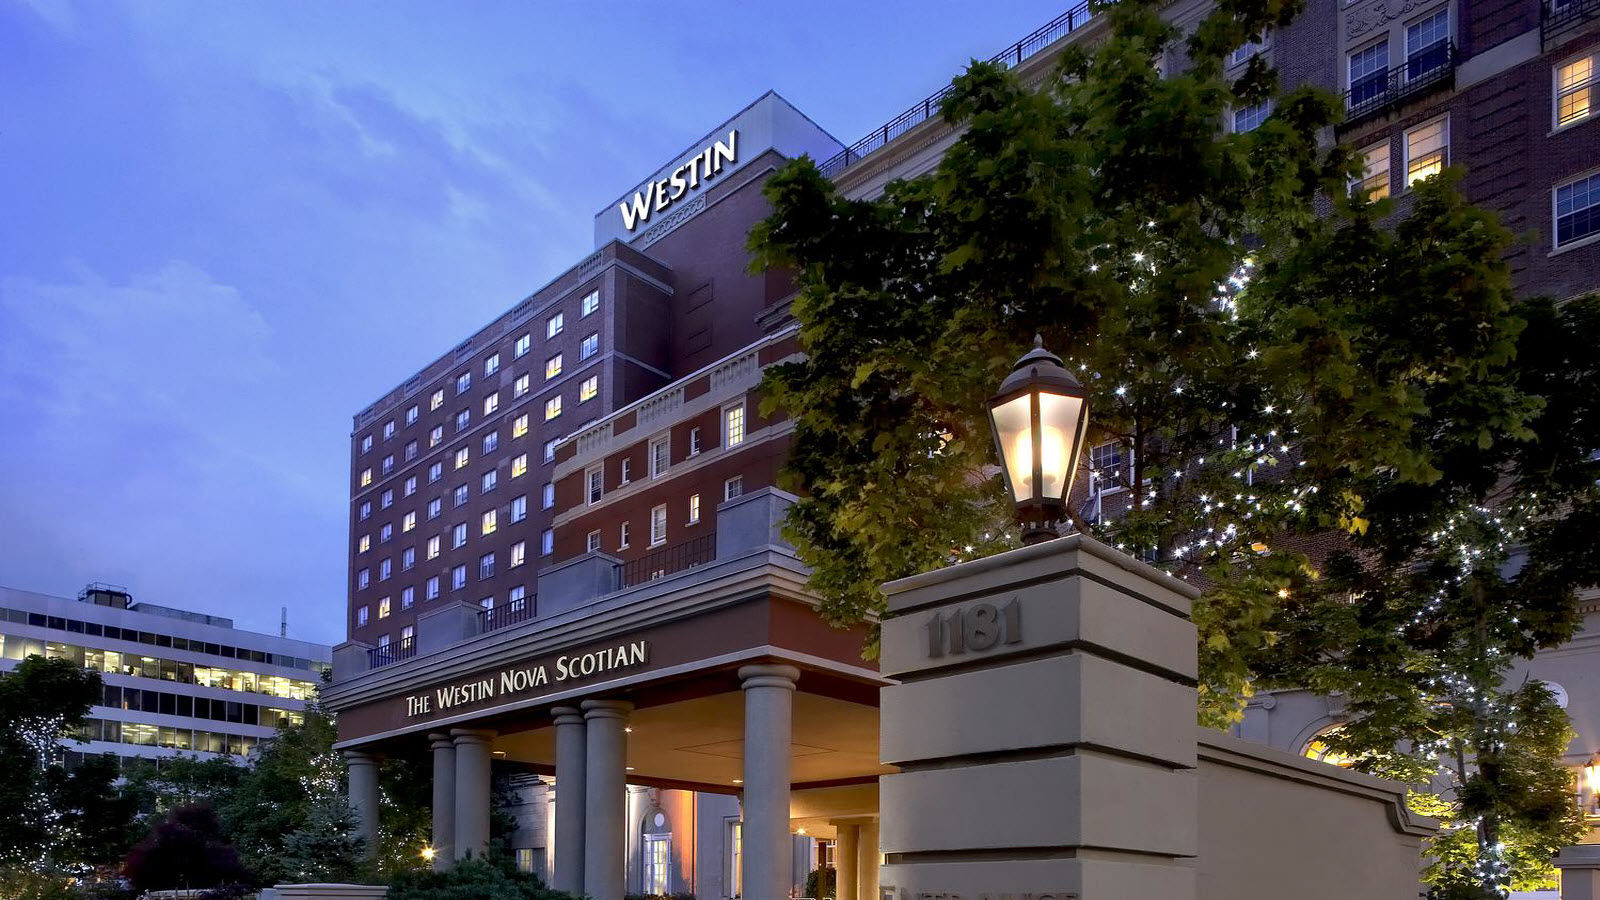 The Westin Nova Scotian - Hotel Parking